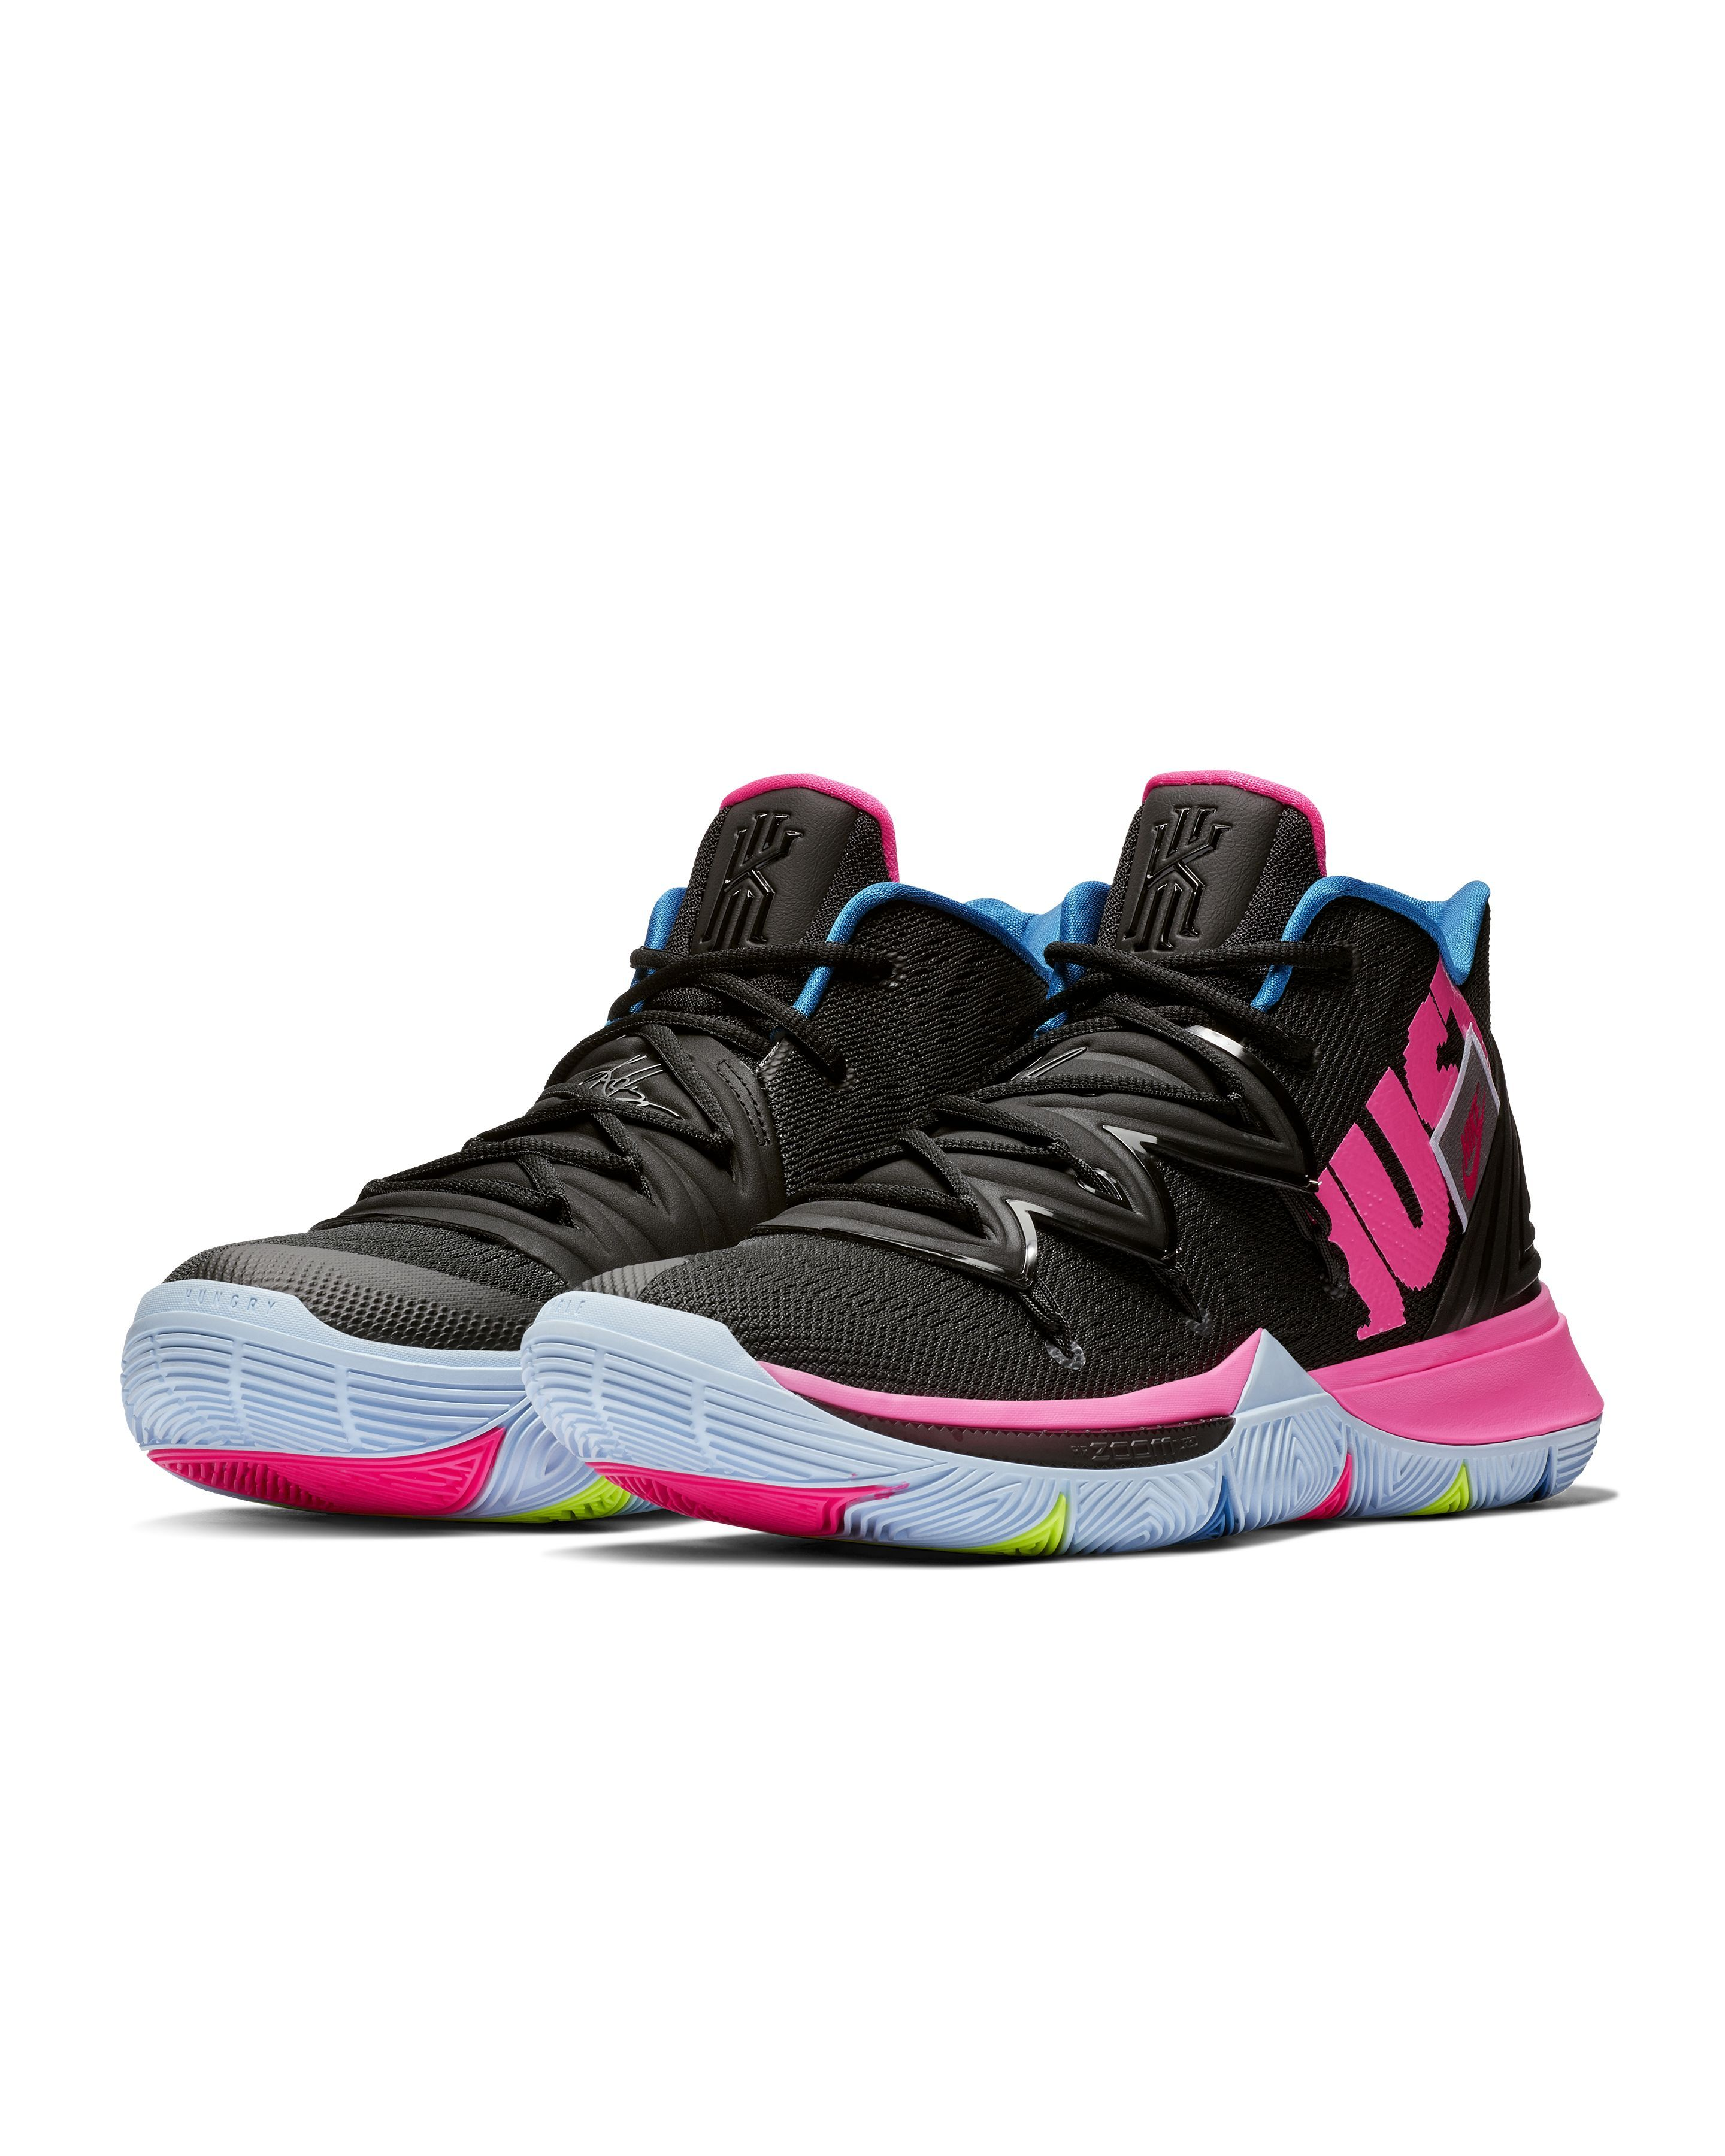 7278036bbe30 15 Best Pairs of Basketball Shoes for Men 2019